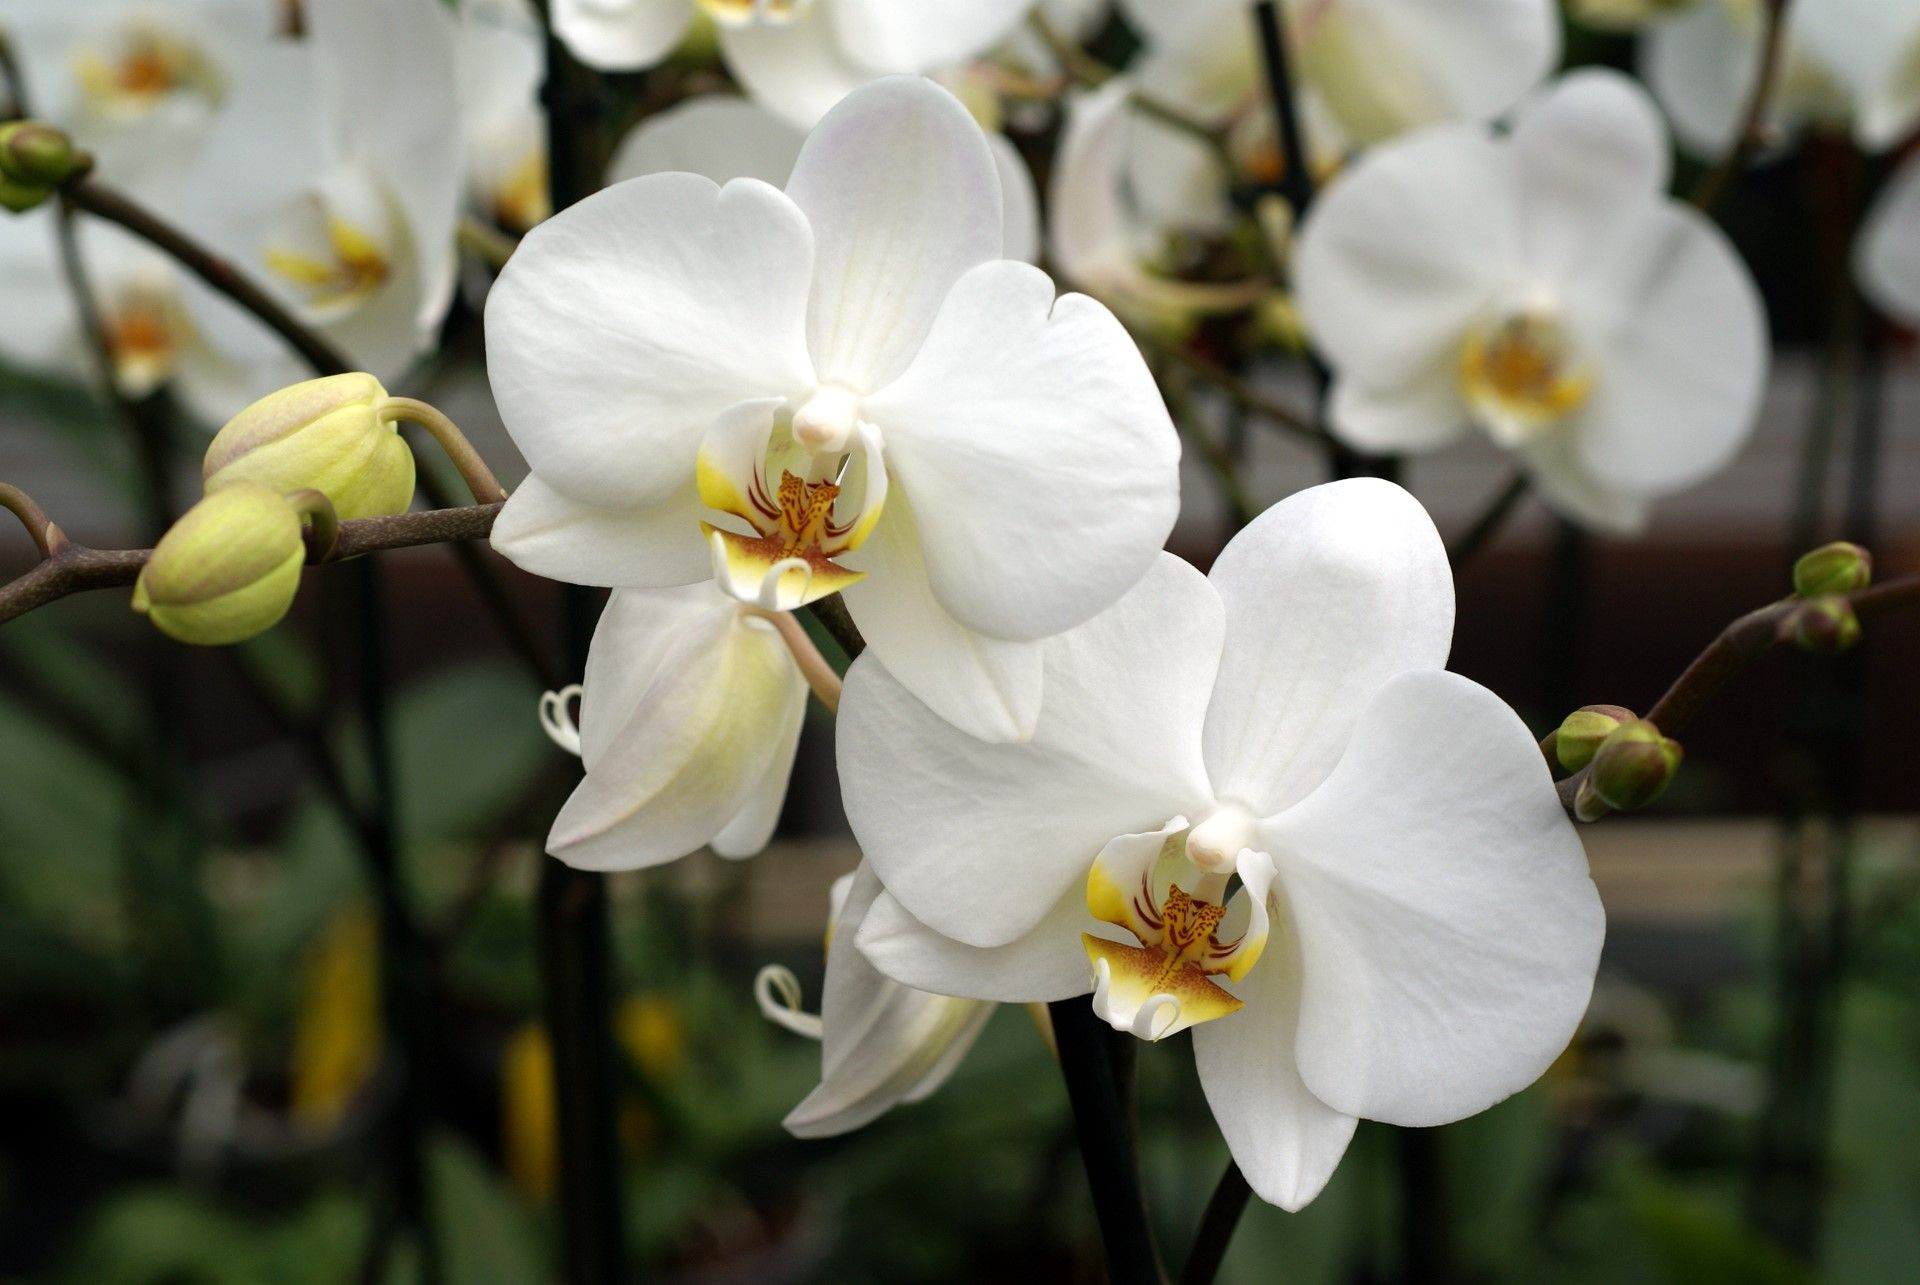 Orchids Are A Beautiful Work Of Art I Fill My Home With Them To Bring Me Joy And Surround Myself With Beauty Orchid Flower White Orchids Orchids